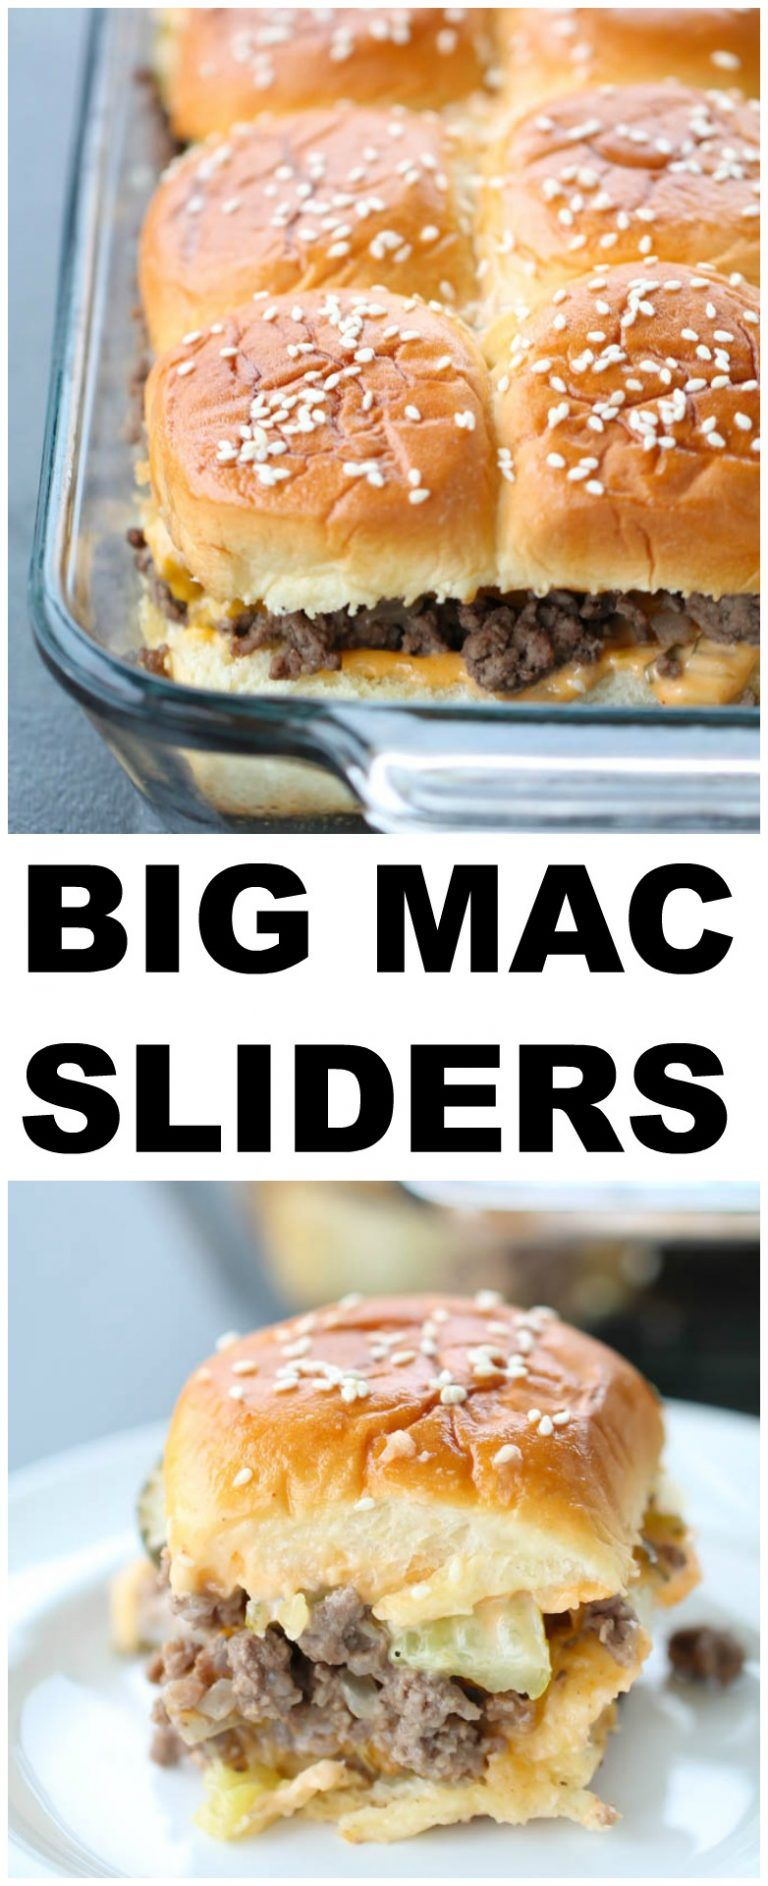 Big Mac Sliders Recipe